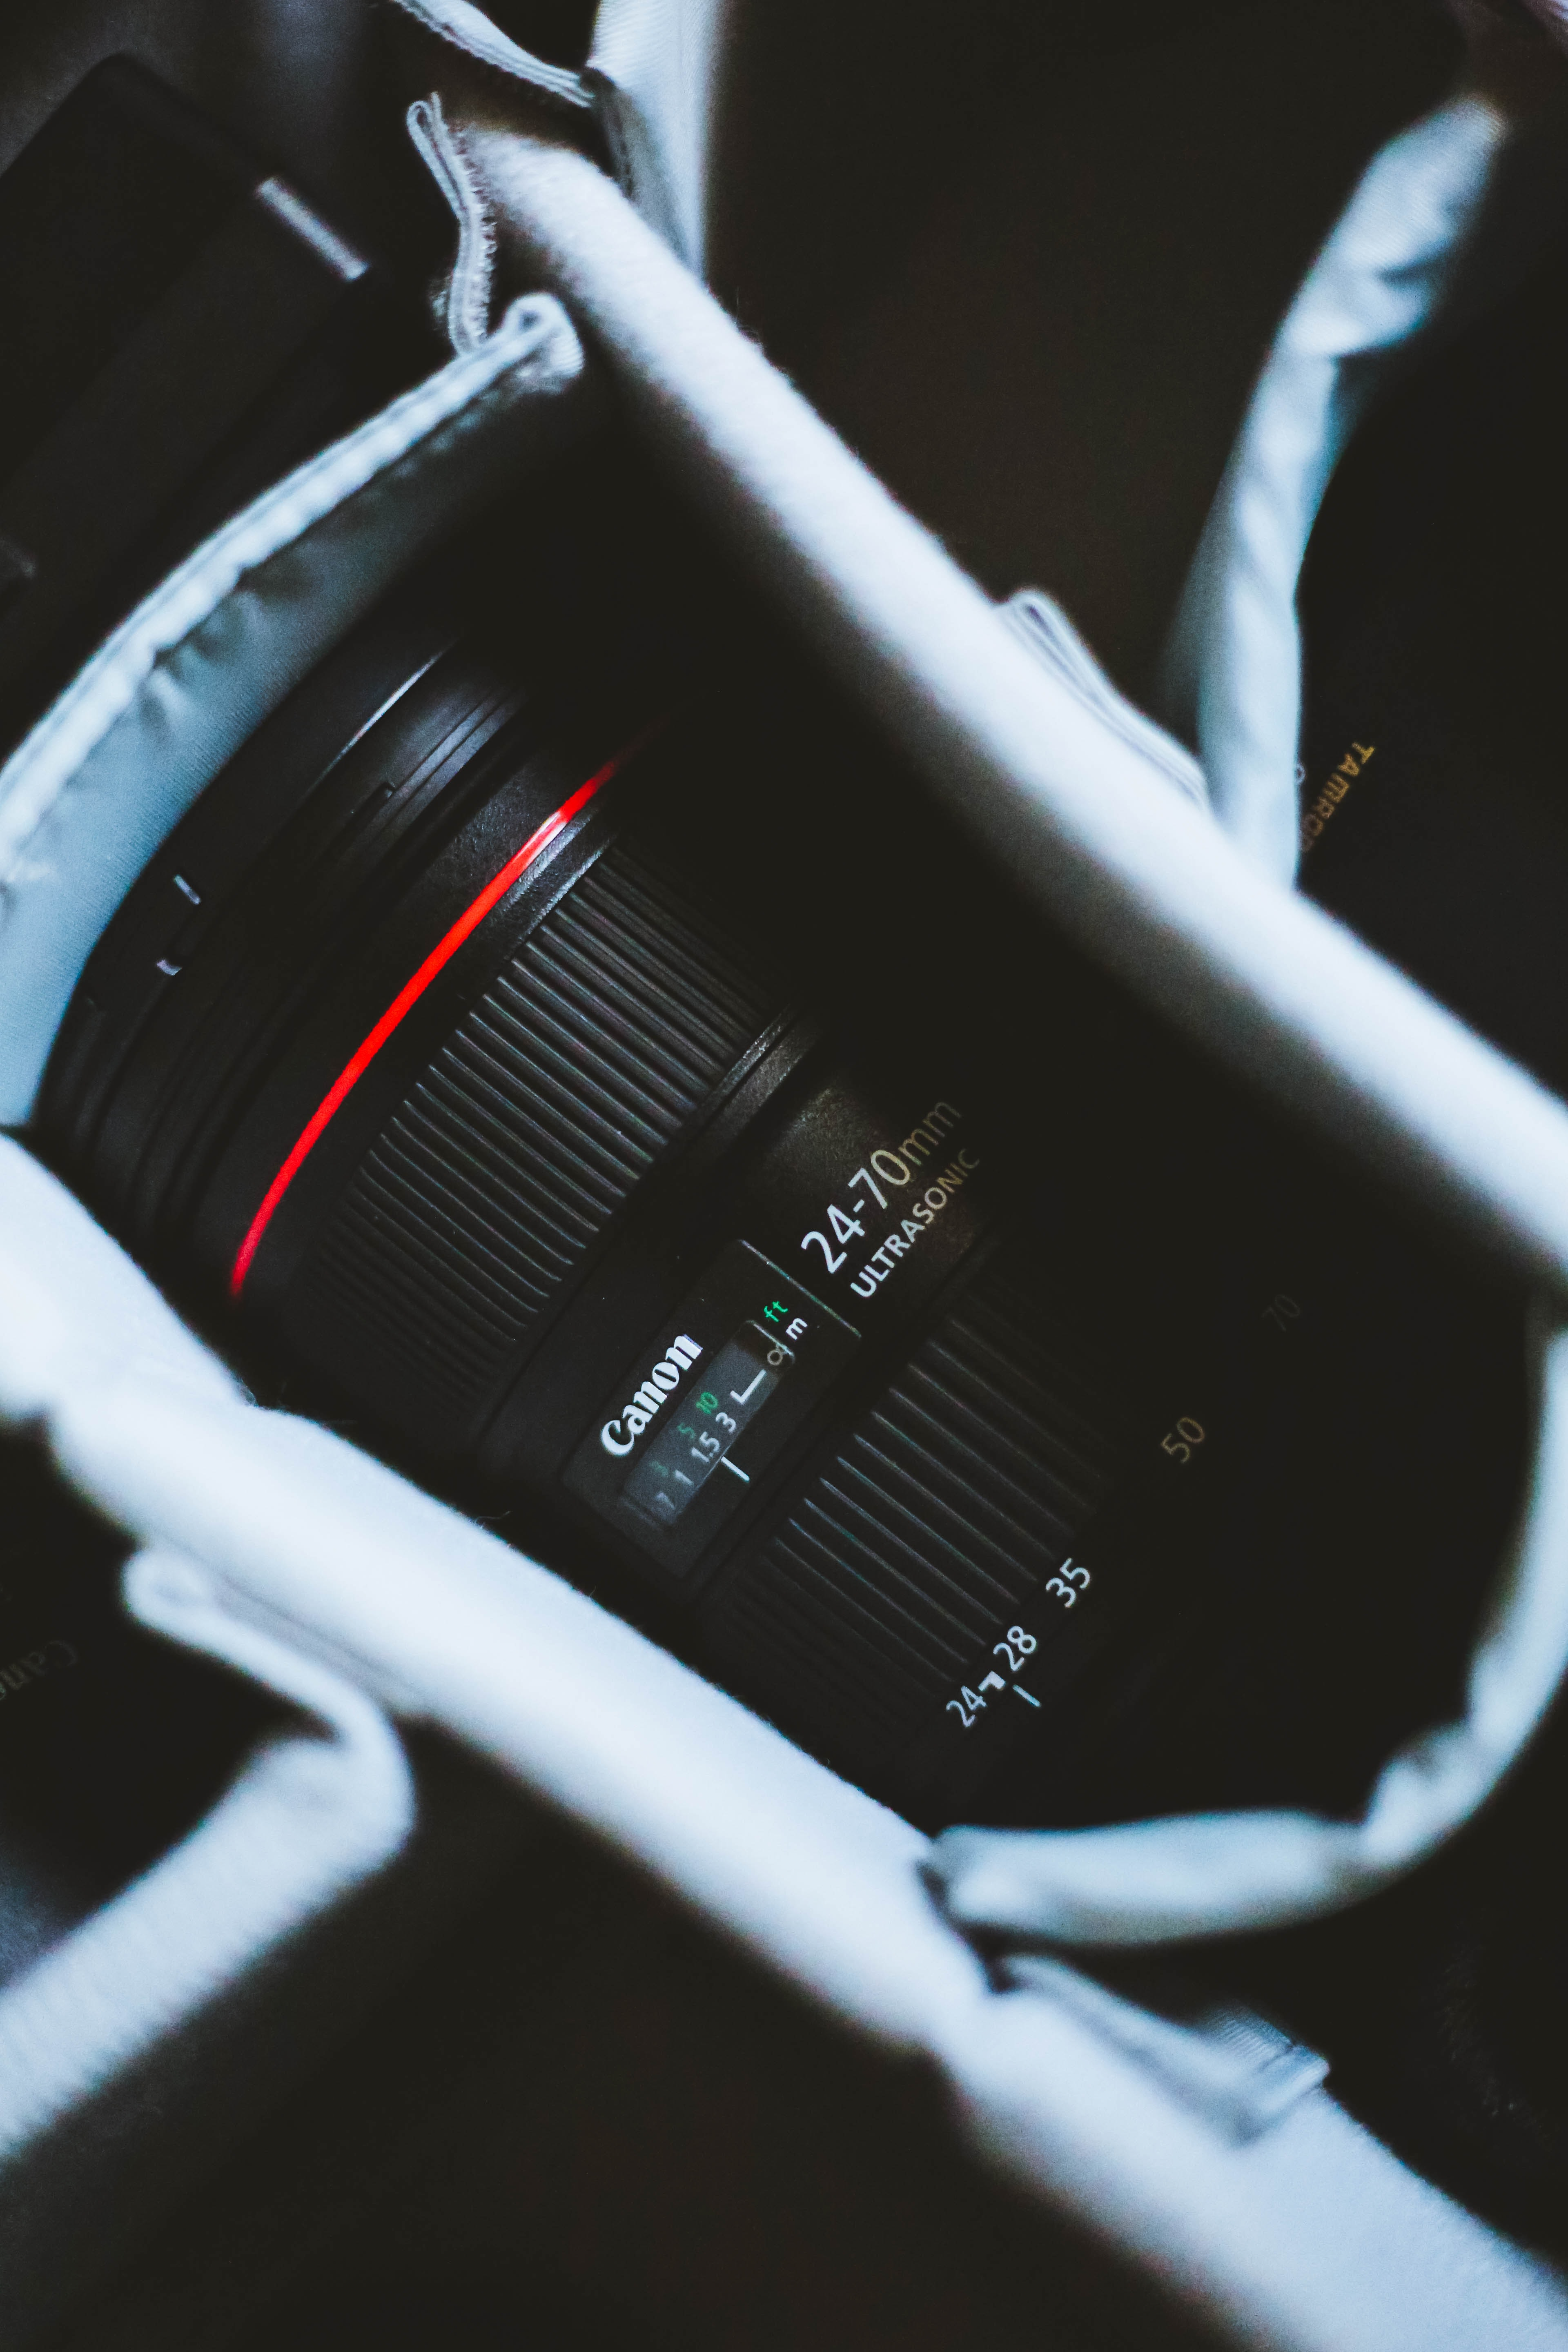 black and red Canon zoom lens in bag